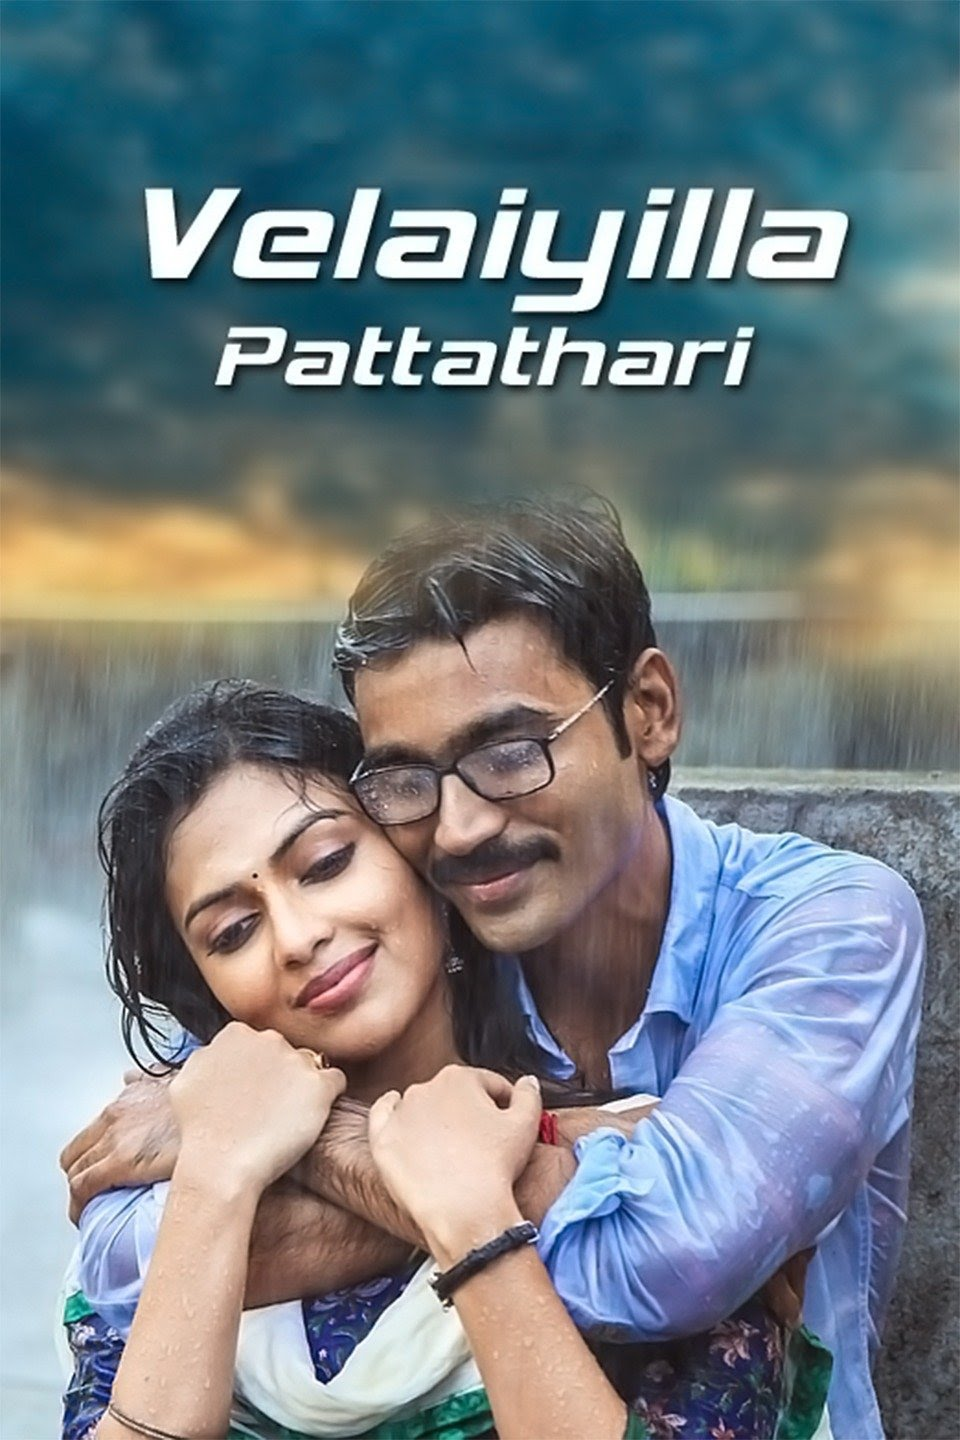 Velaiyilla Pattathari (VIP) 2014 Hindi Dual Audio 1080p UNCUT HDRip 2.9GB x264 AAC